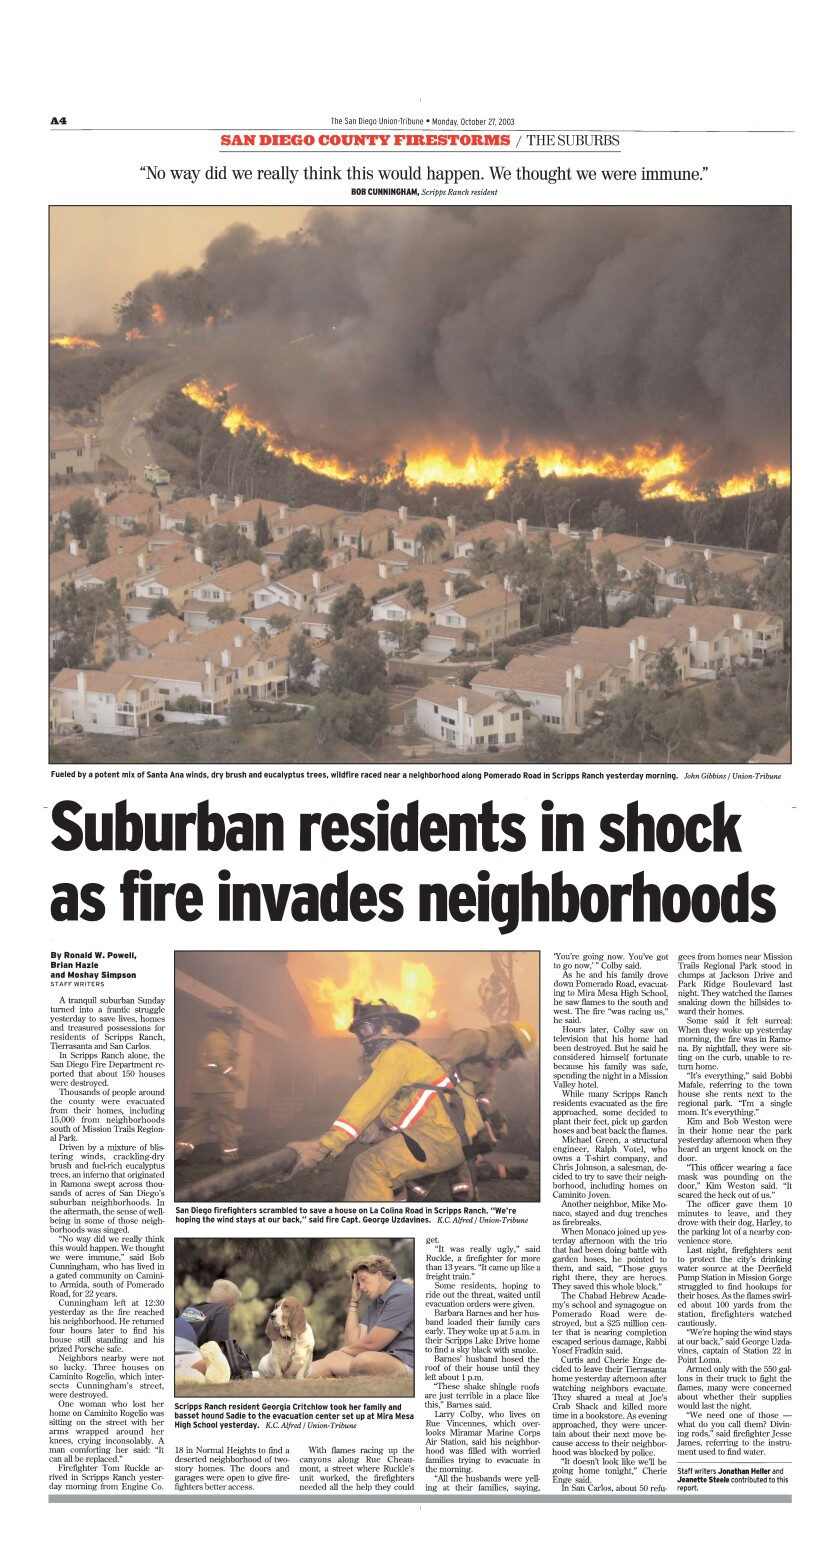 Page A-4 of The San Diego Union-Tribune published October 27, 2003